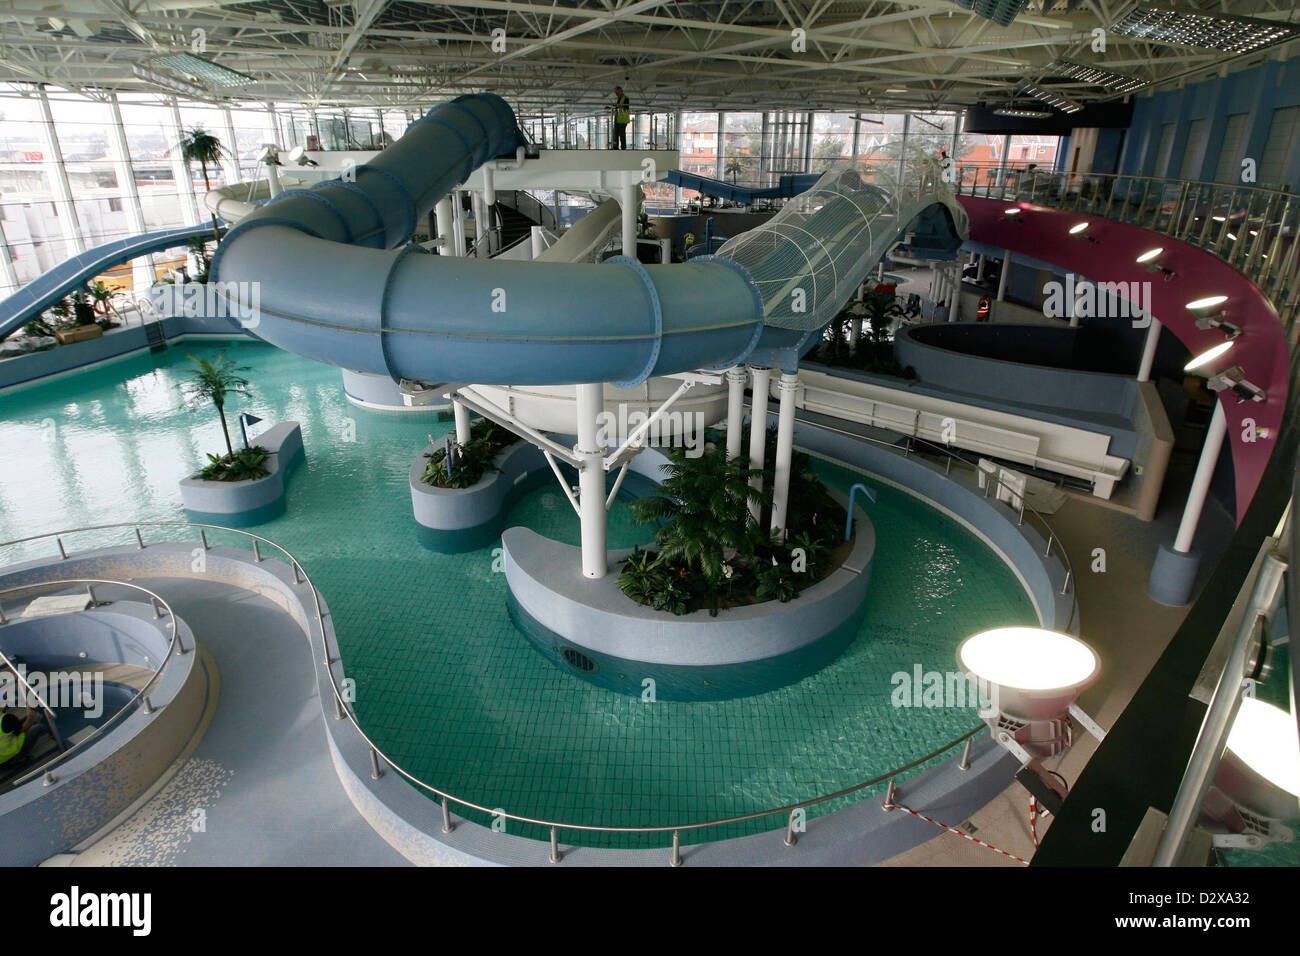 The new LC, Swansea. Pool general views. Stock Photo